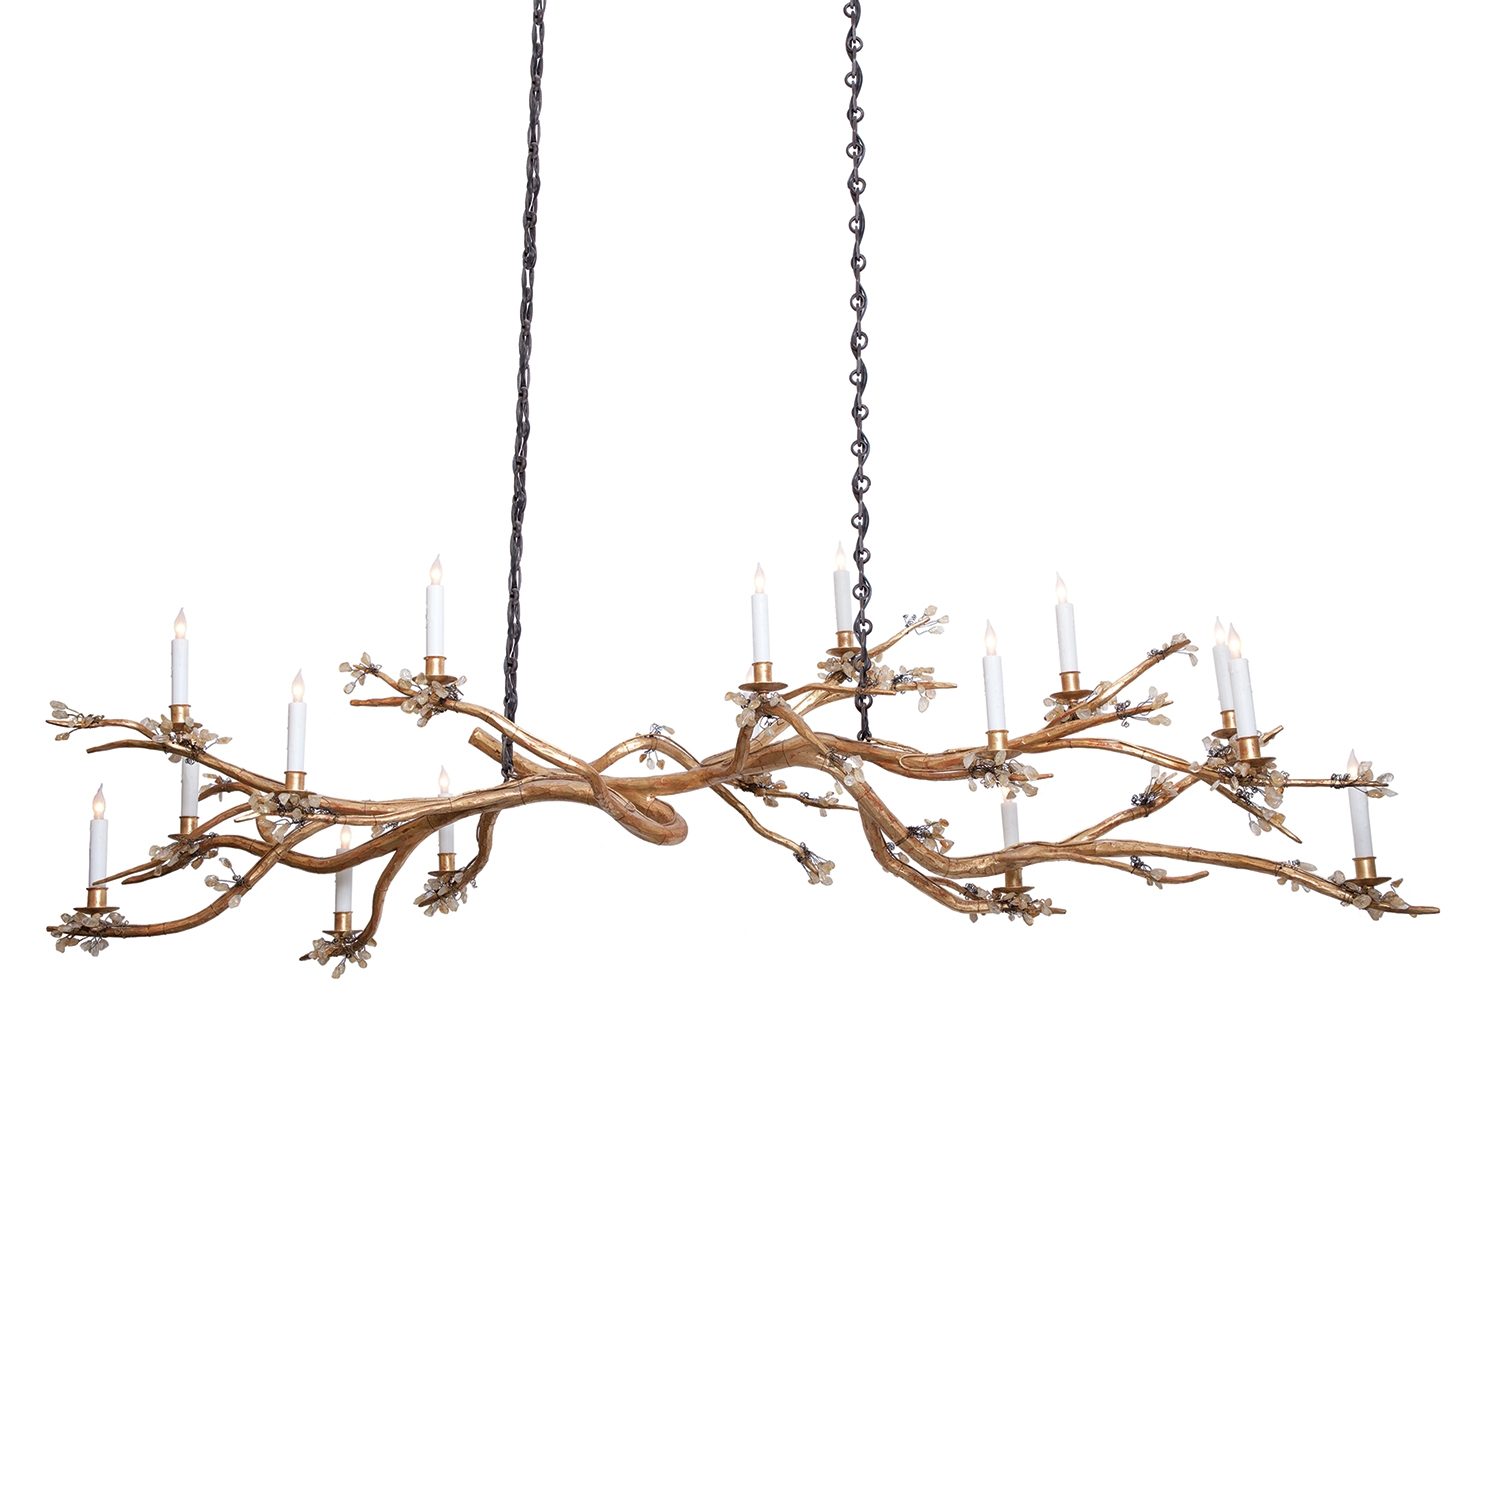 Twig Chandelier Home Decor Throughout Branch Chandeliers (Image 14 of 15)